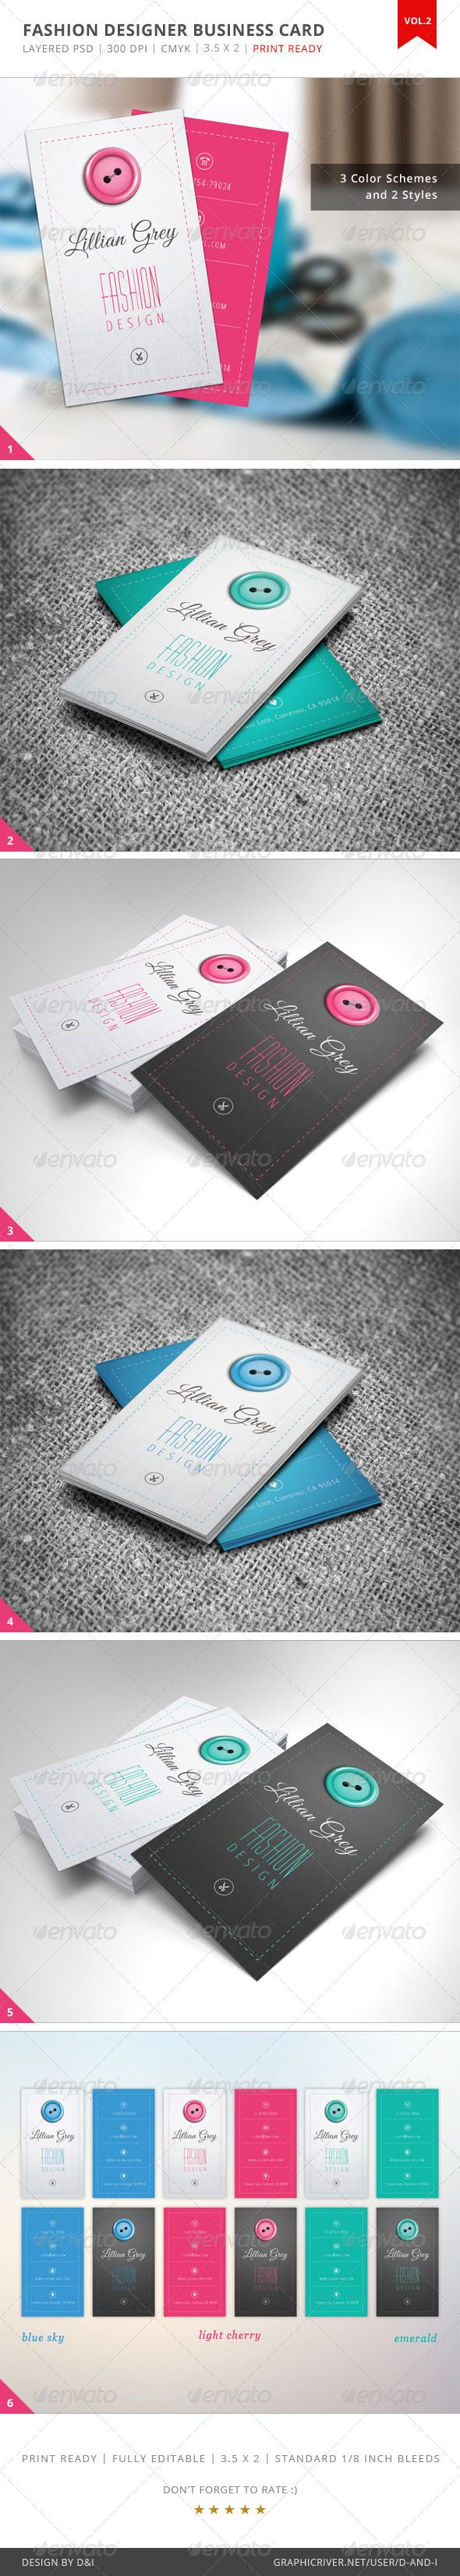 Fashion Designer Business Card - Vol.2 - Creative Business Cards